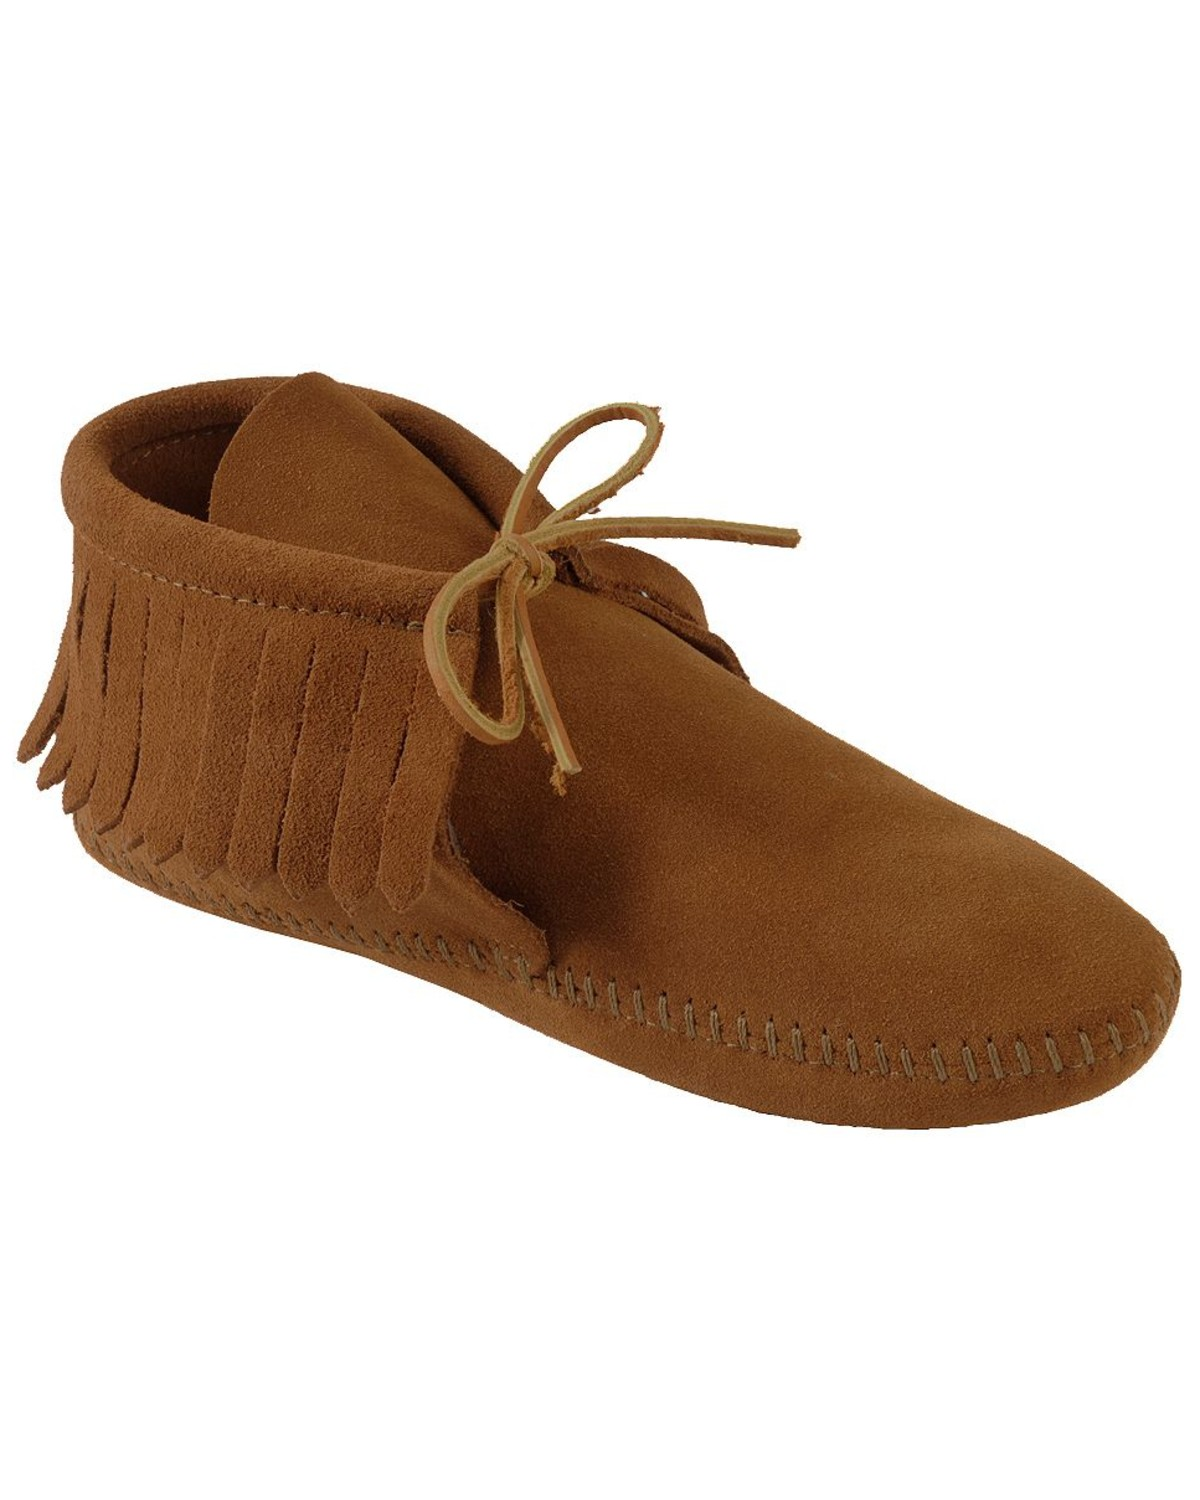 Minnetonka suede leather knee high tall lace up moccasin fringe boots - Minnetonka Fringed Soft Sole Moccasins Brown Hi Res